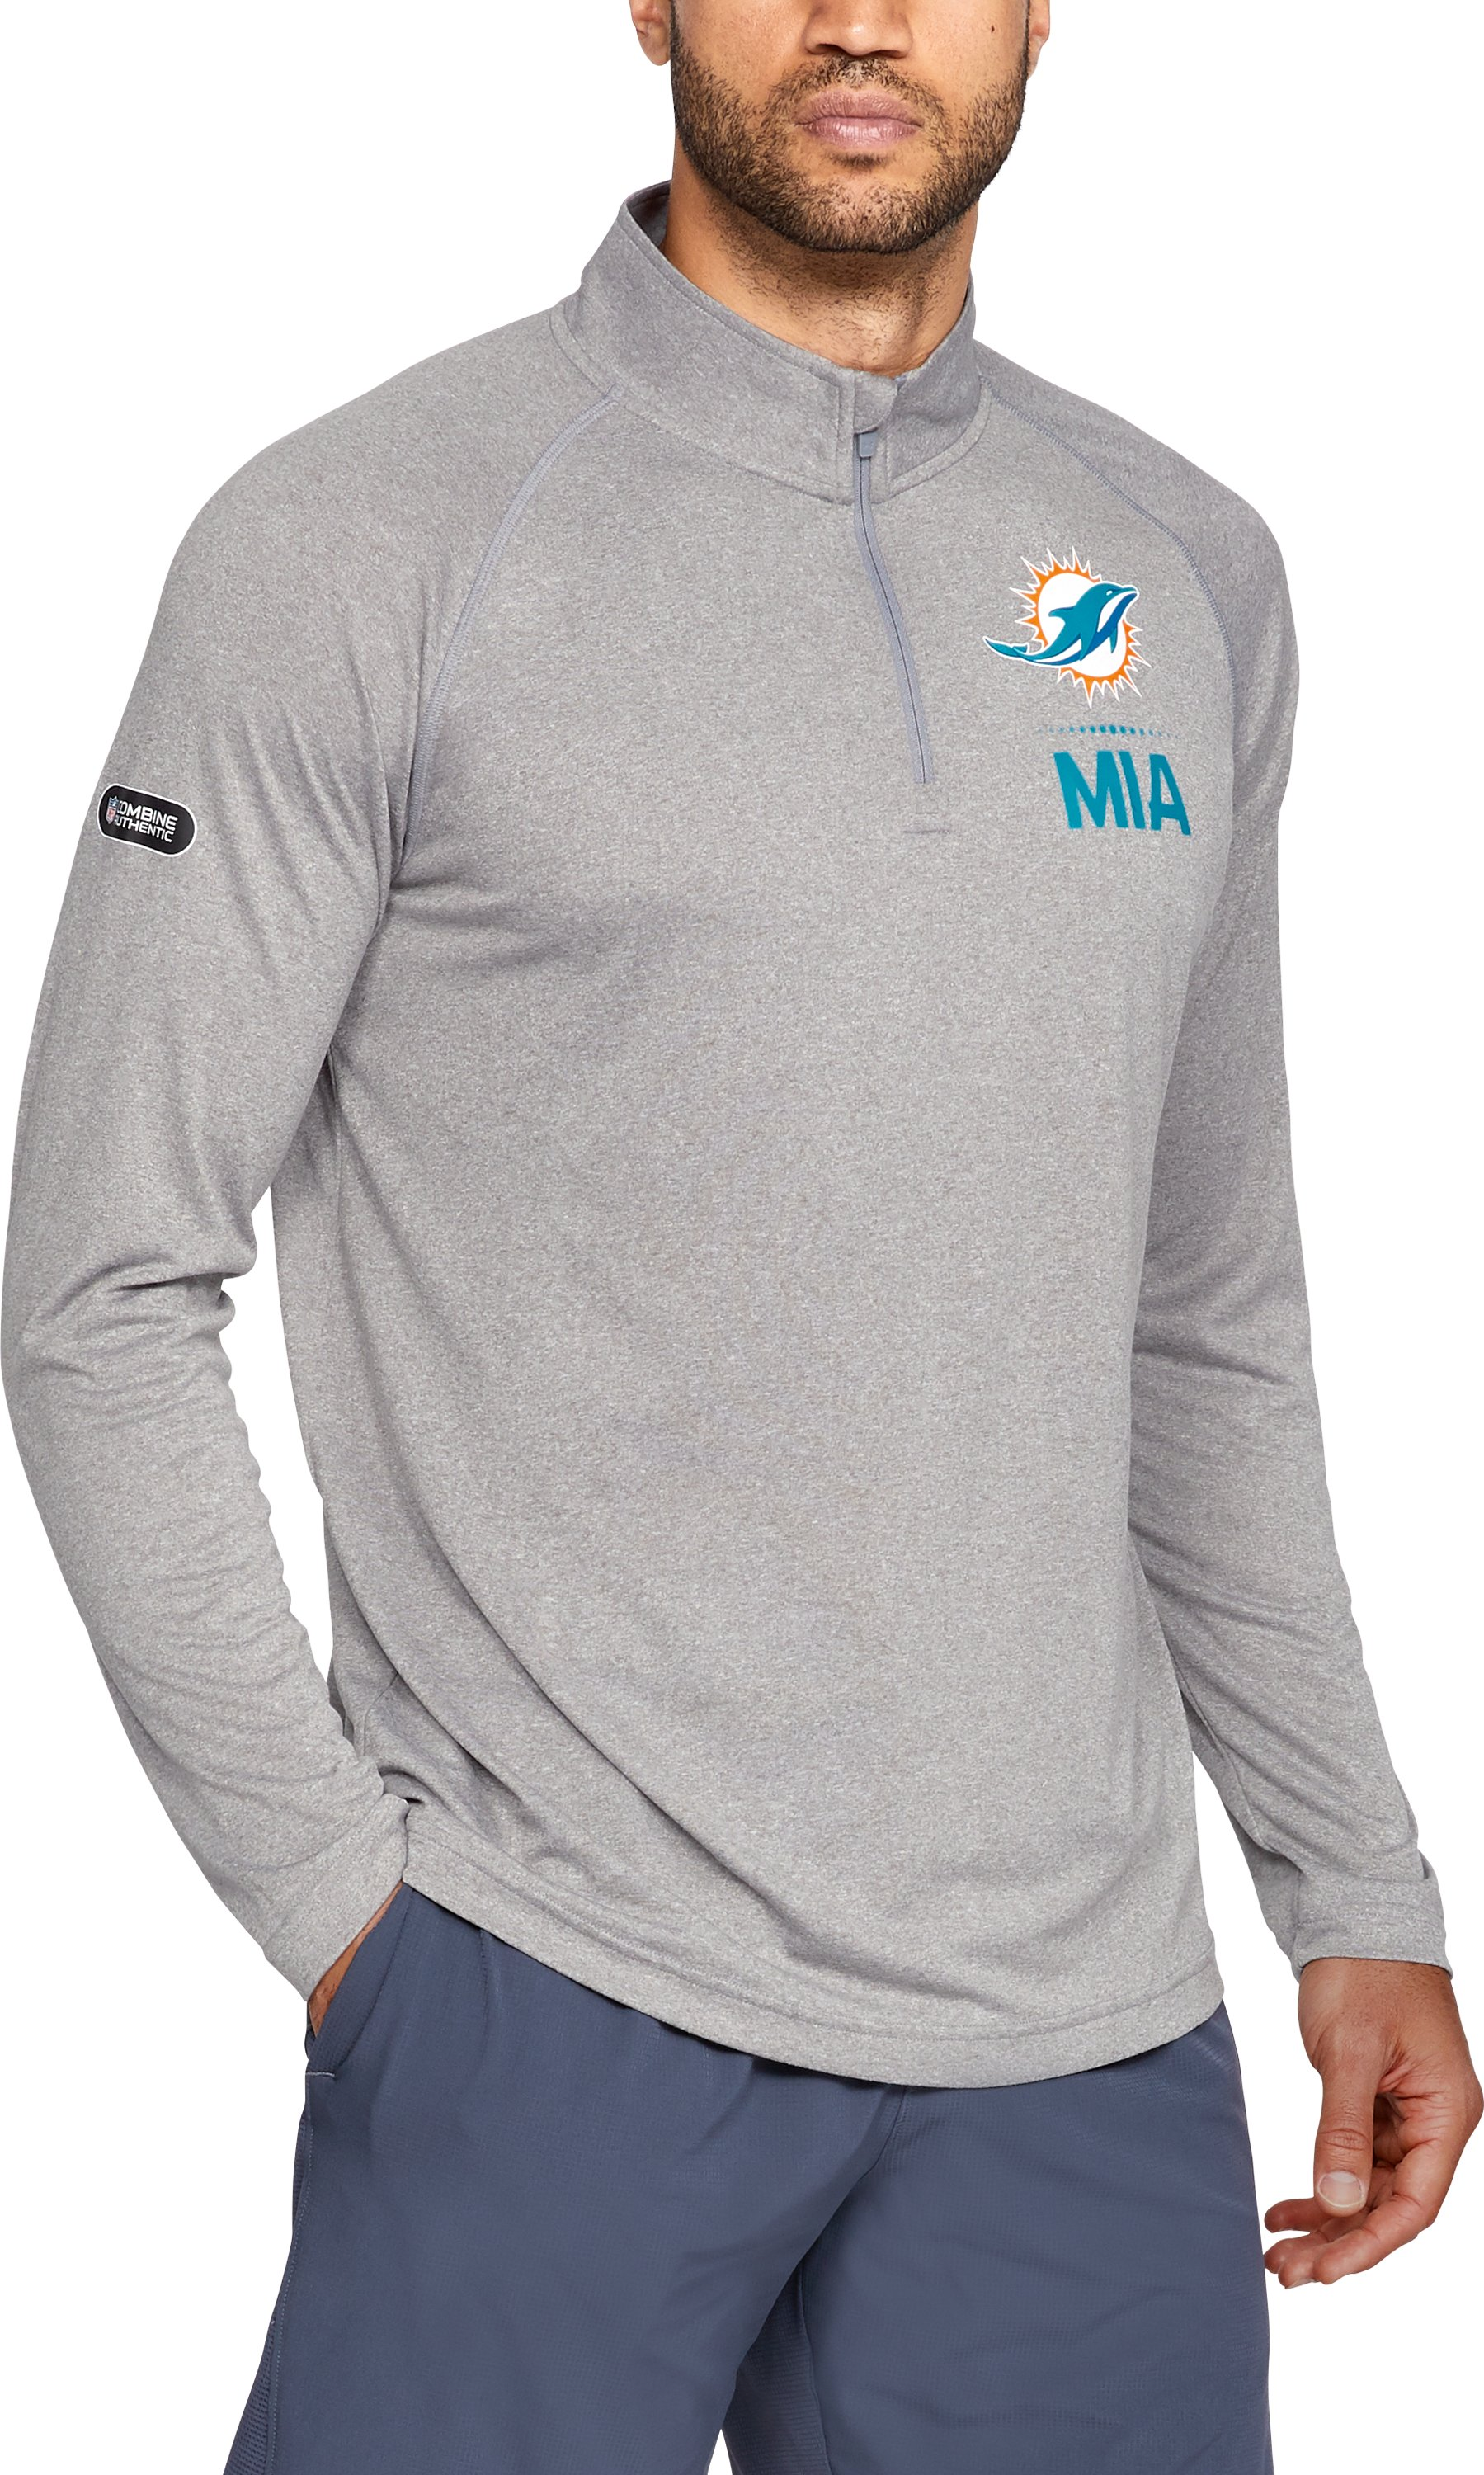 Men's NFL Combine Authentic UA Tech™ ¼ Zip Long Sleeve Shirt, NFL_Miami Dolphins_TGH, zoomed